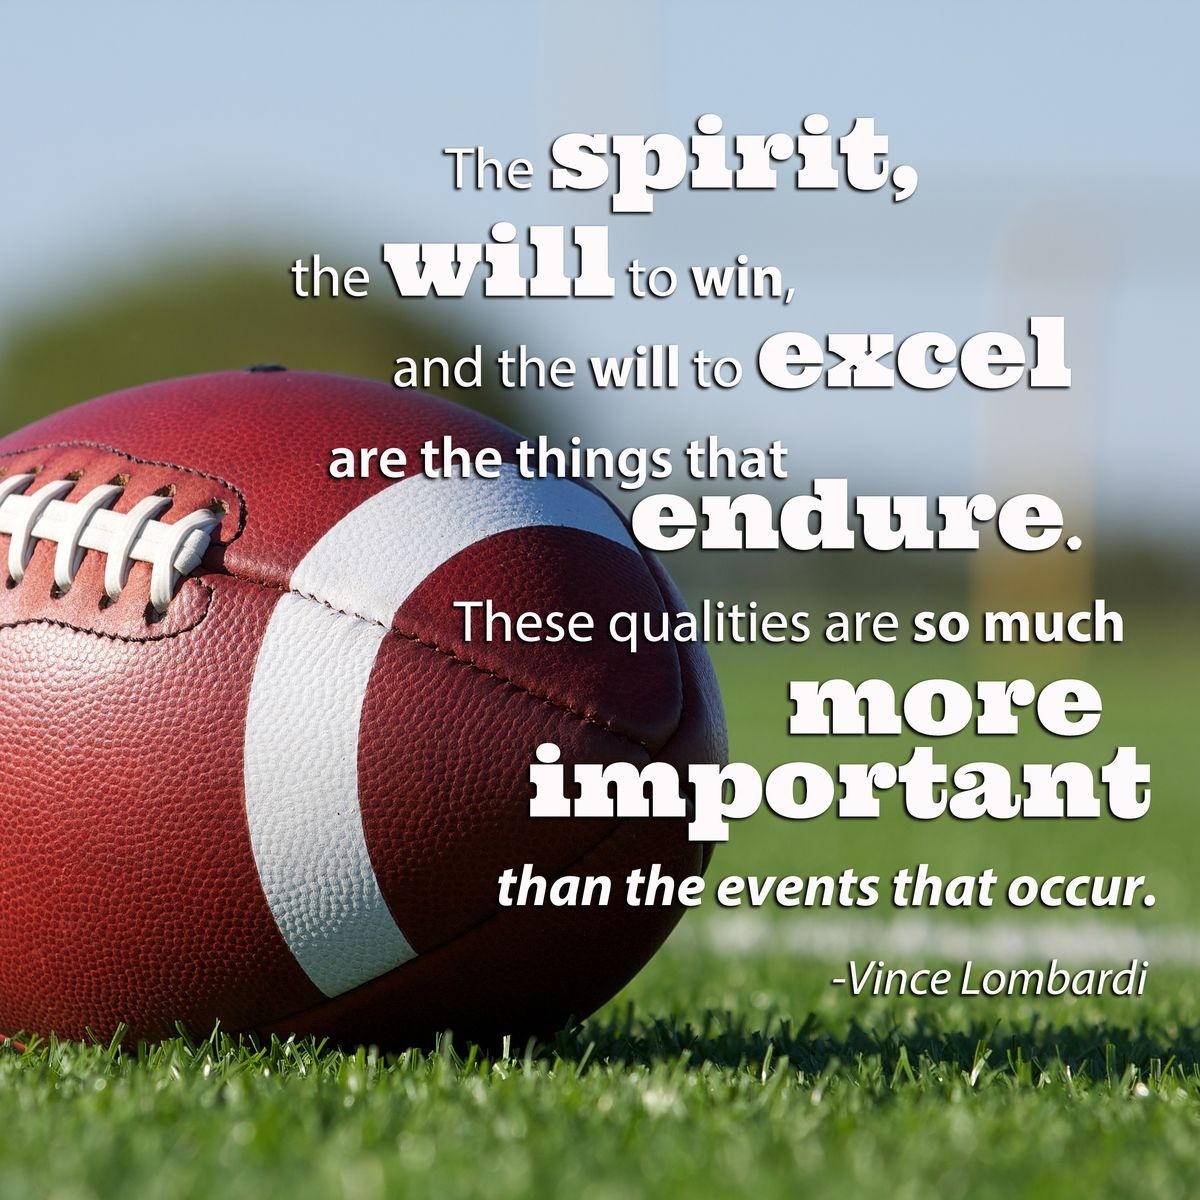 Football Training Motivational Quotes: Panther Football Quotes Motivational. QuotesGram